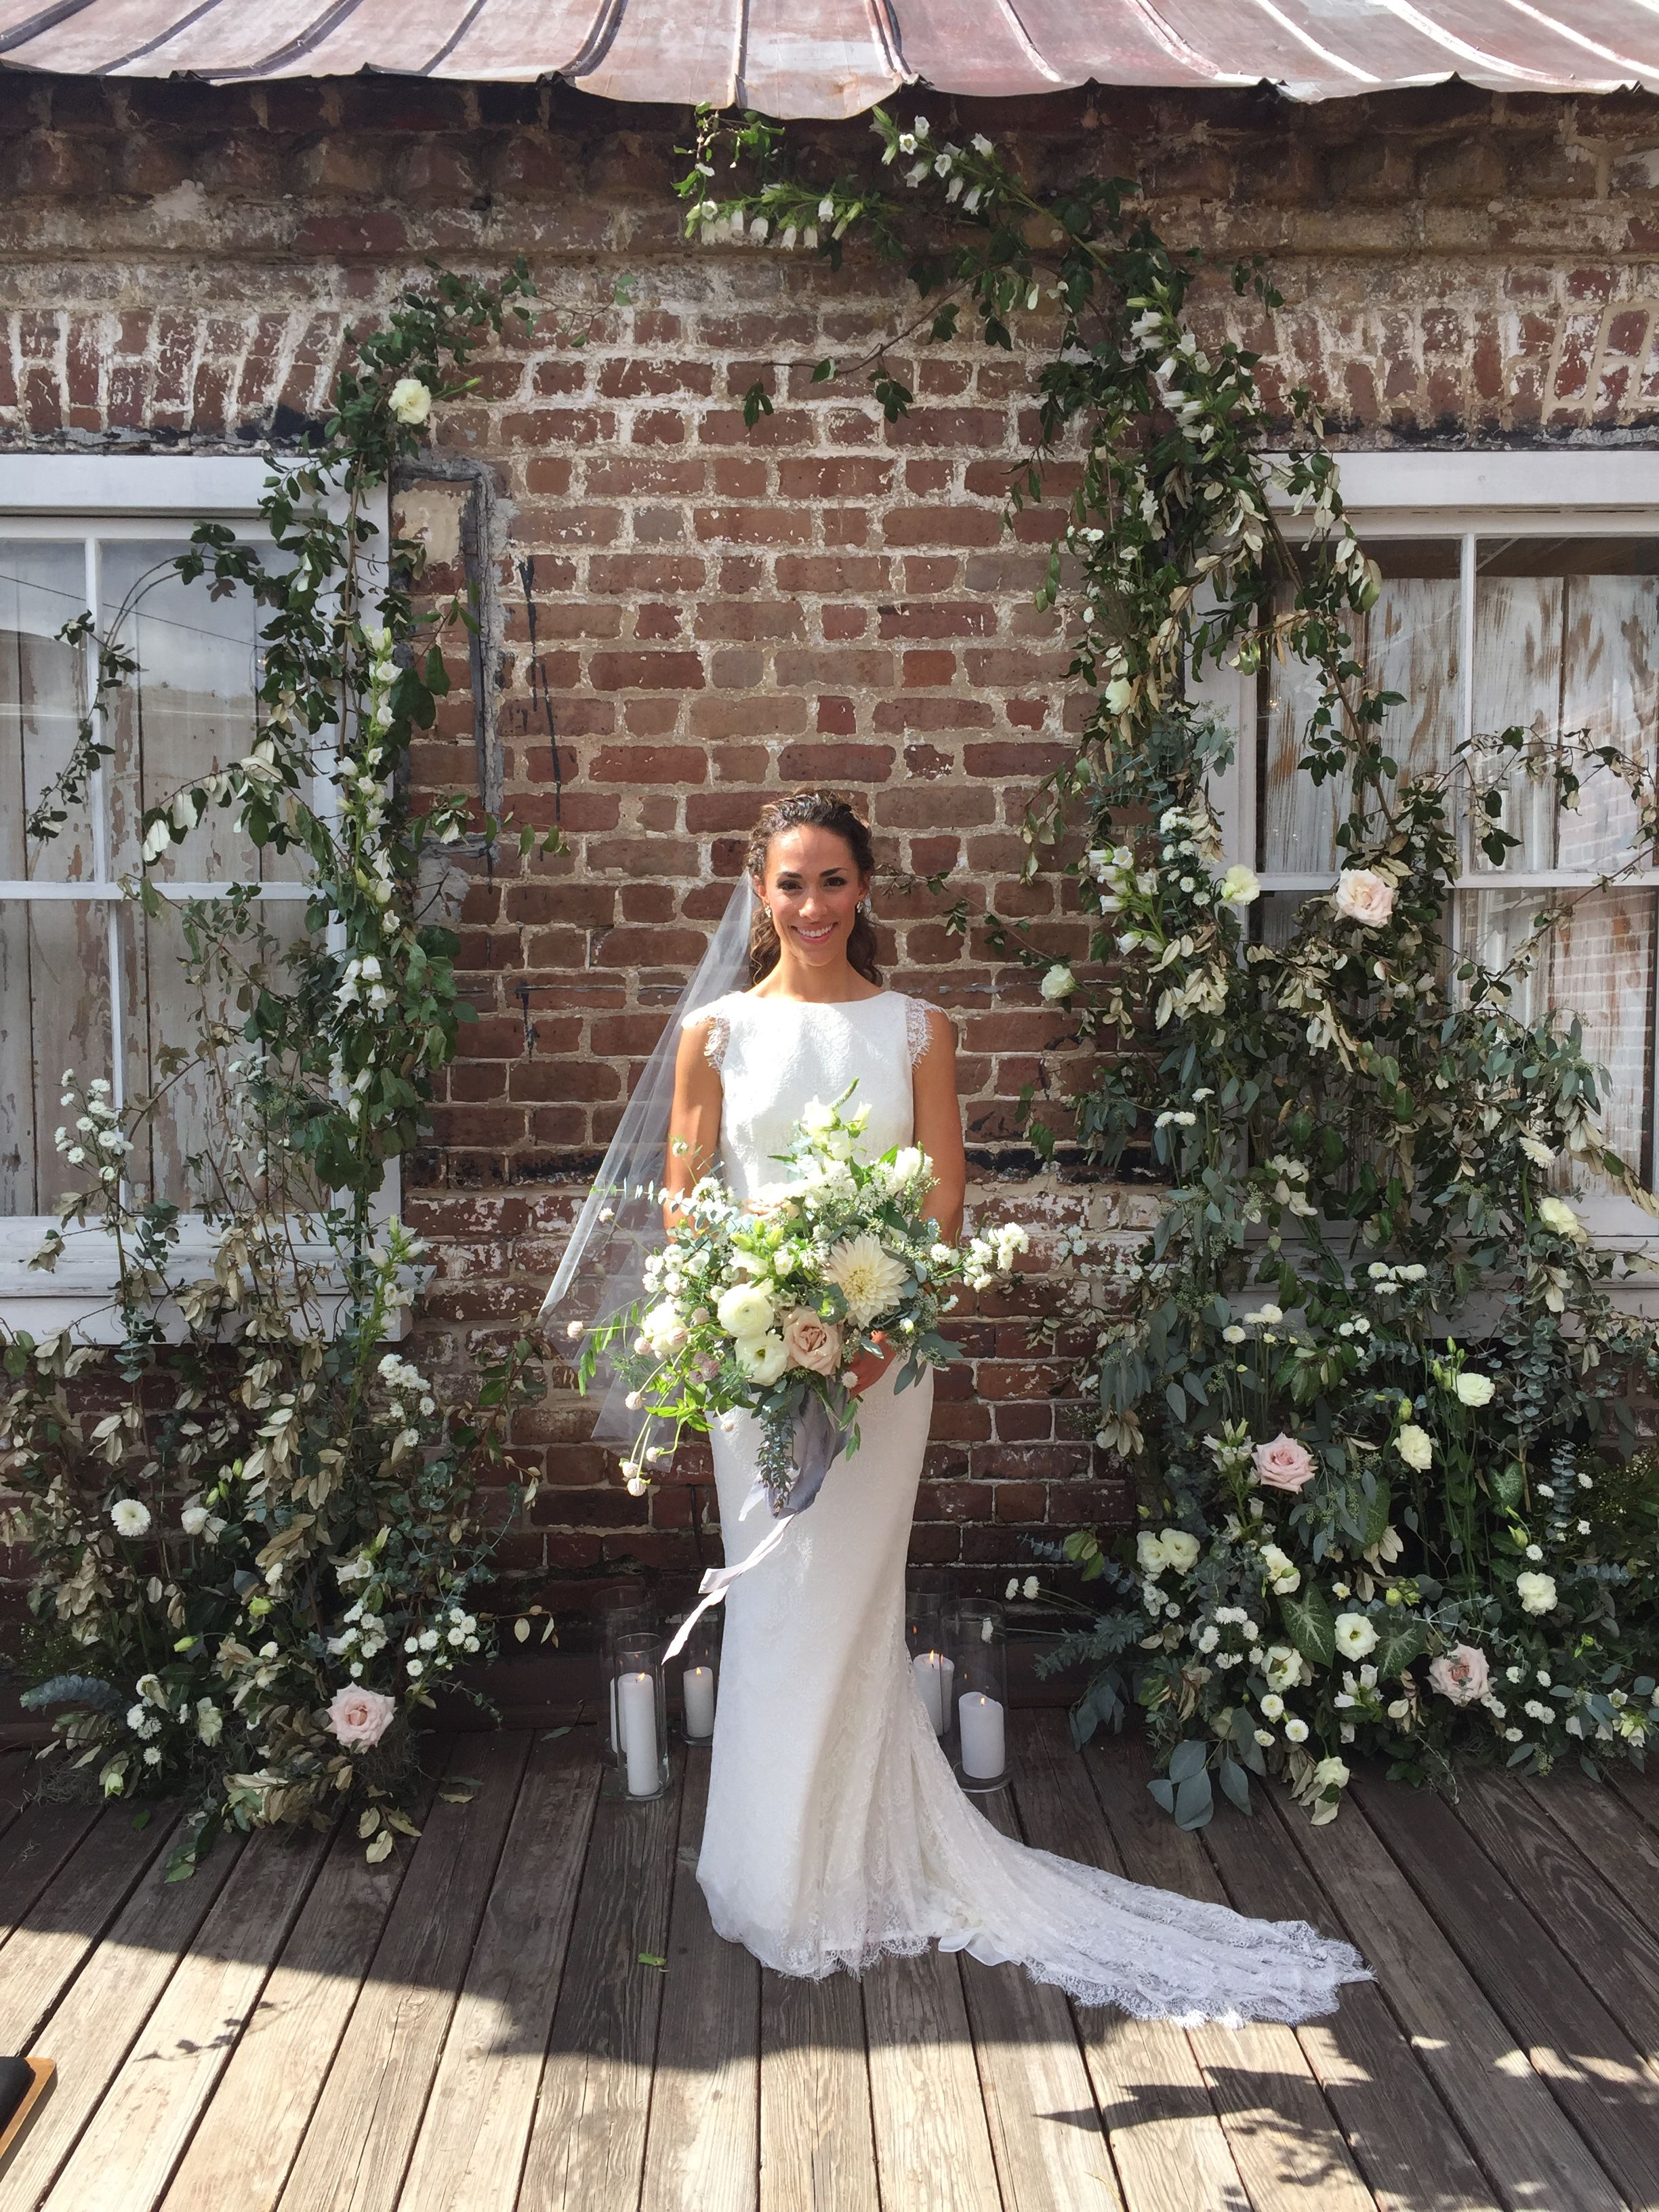 Greenery Arch Backdrop With White Flowers Against Brick Wall For Wedding Ceremony In Charleston Sc Wedding Ceremony Flowers Wedding Alters Brick Wall Backdrop